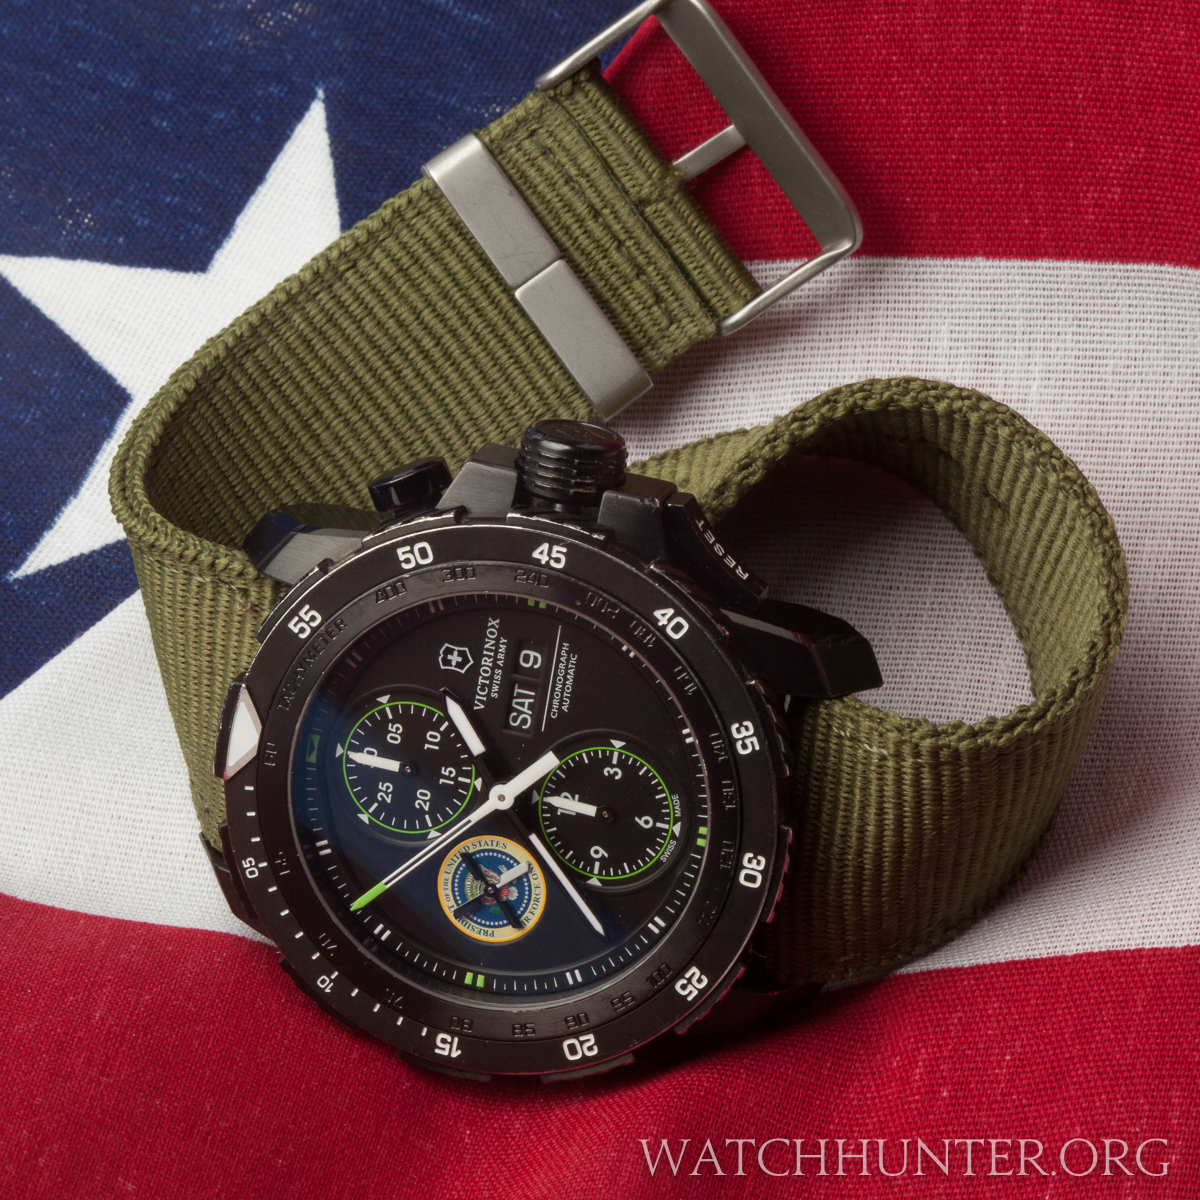 Swiss Army made a private edition watch for Air Force One. It shows the Air Force One / Presidential seal.